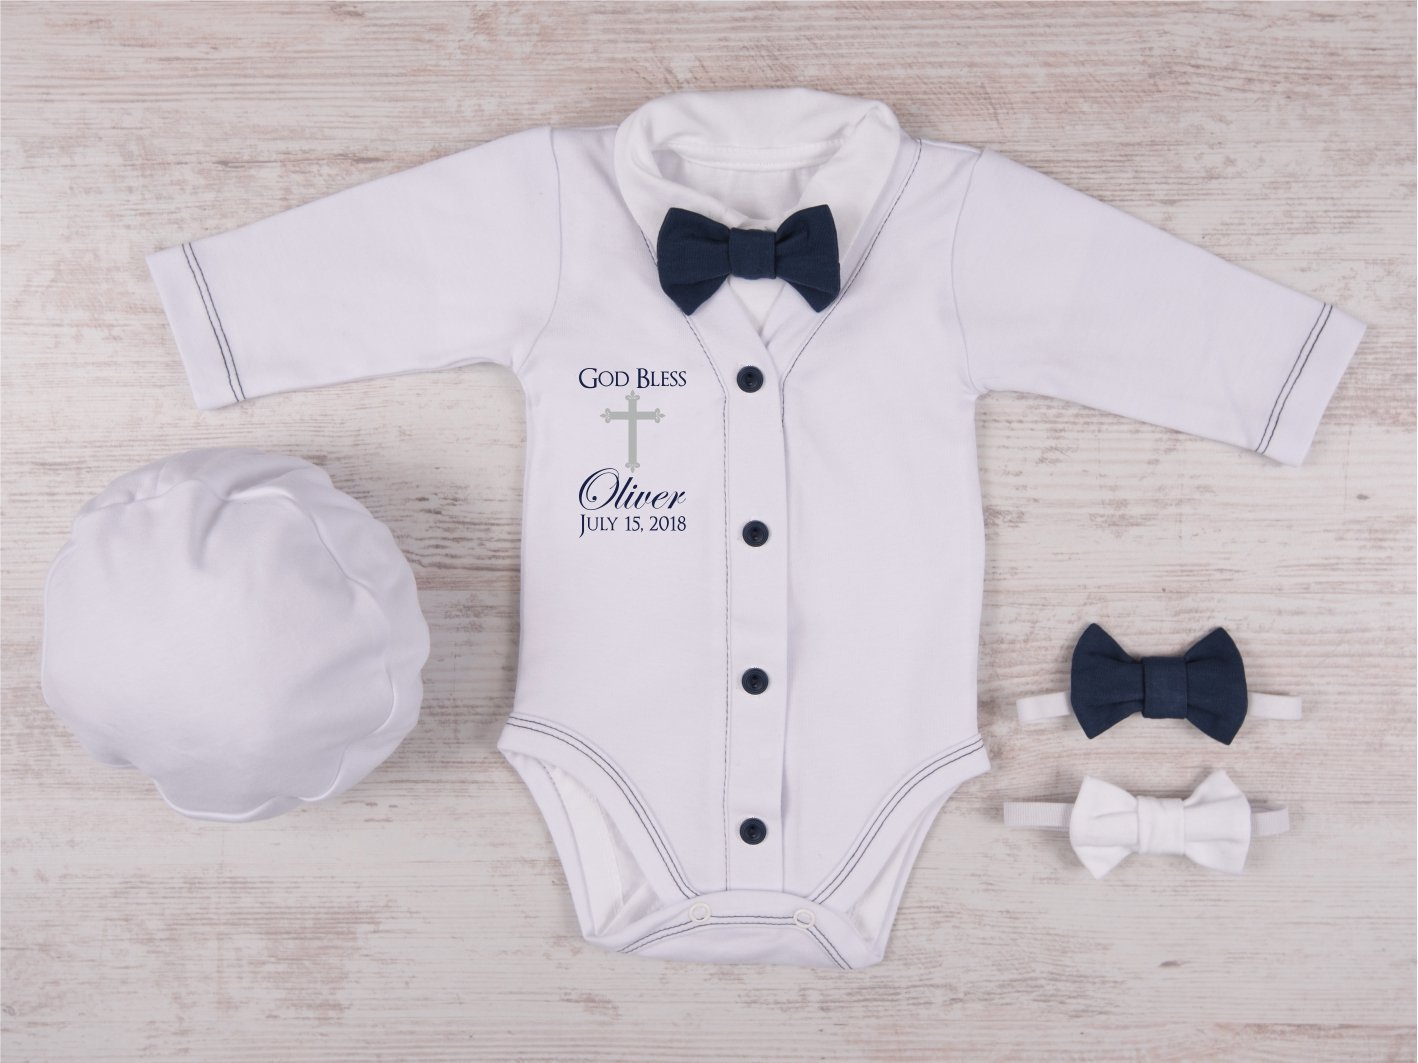 Baby Boy Baptism Outfit, God Bless Personalized White/Navy Cardigan, Bodysuit, Hat and Bow Tie Set